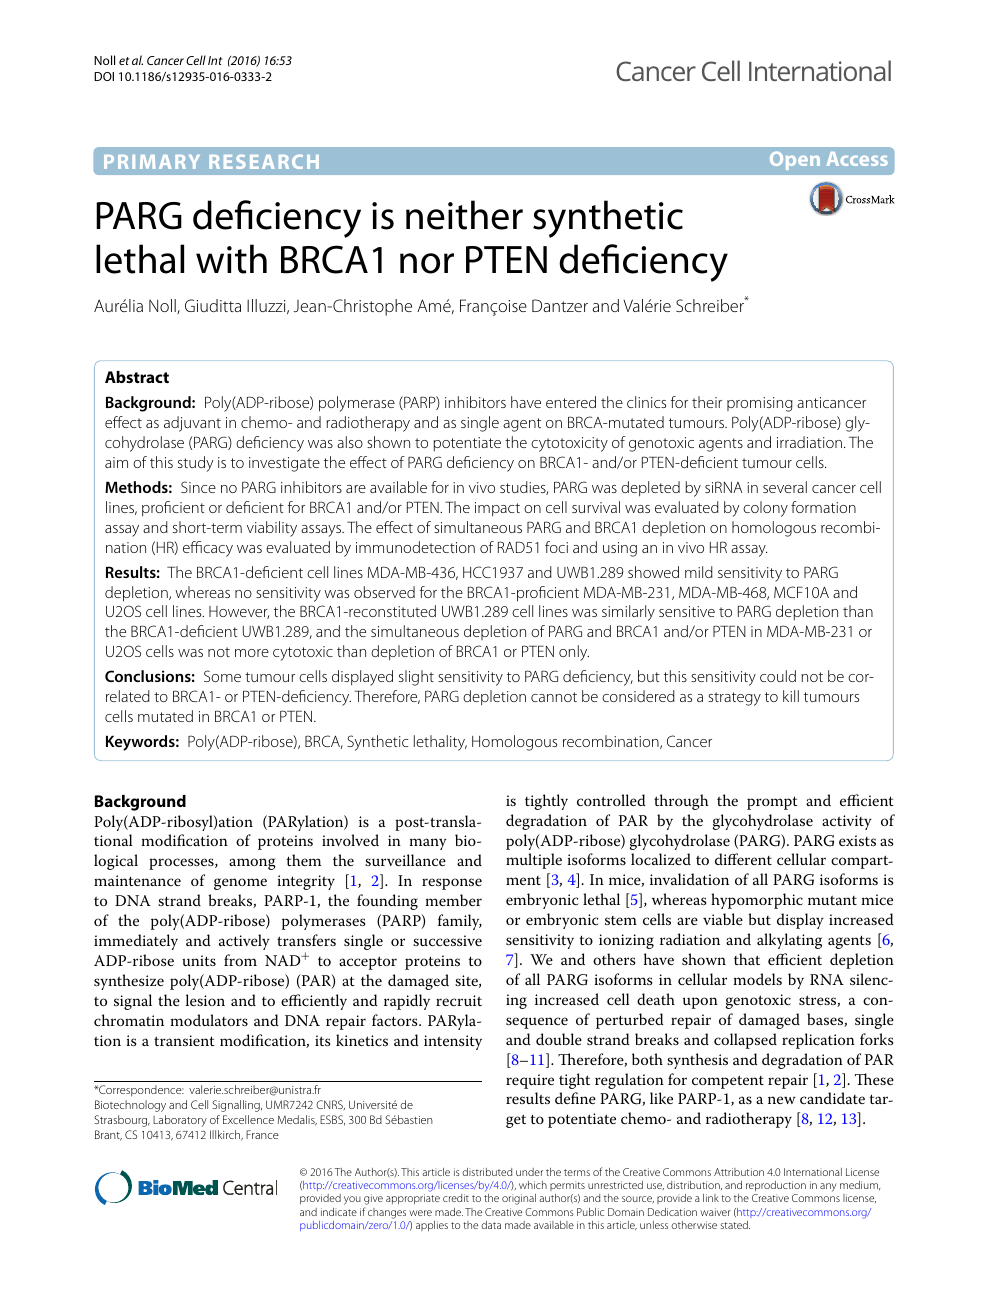 PARG Deficiency Is Neither Synthetic Lethal With BRCA1 Nor PTEN